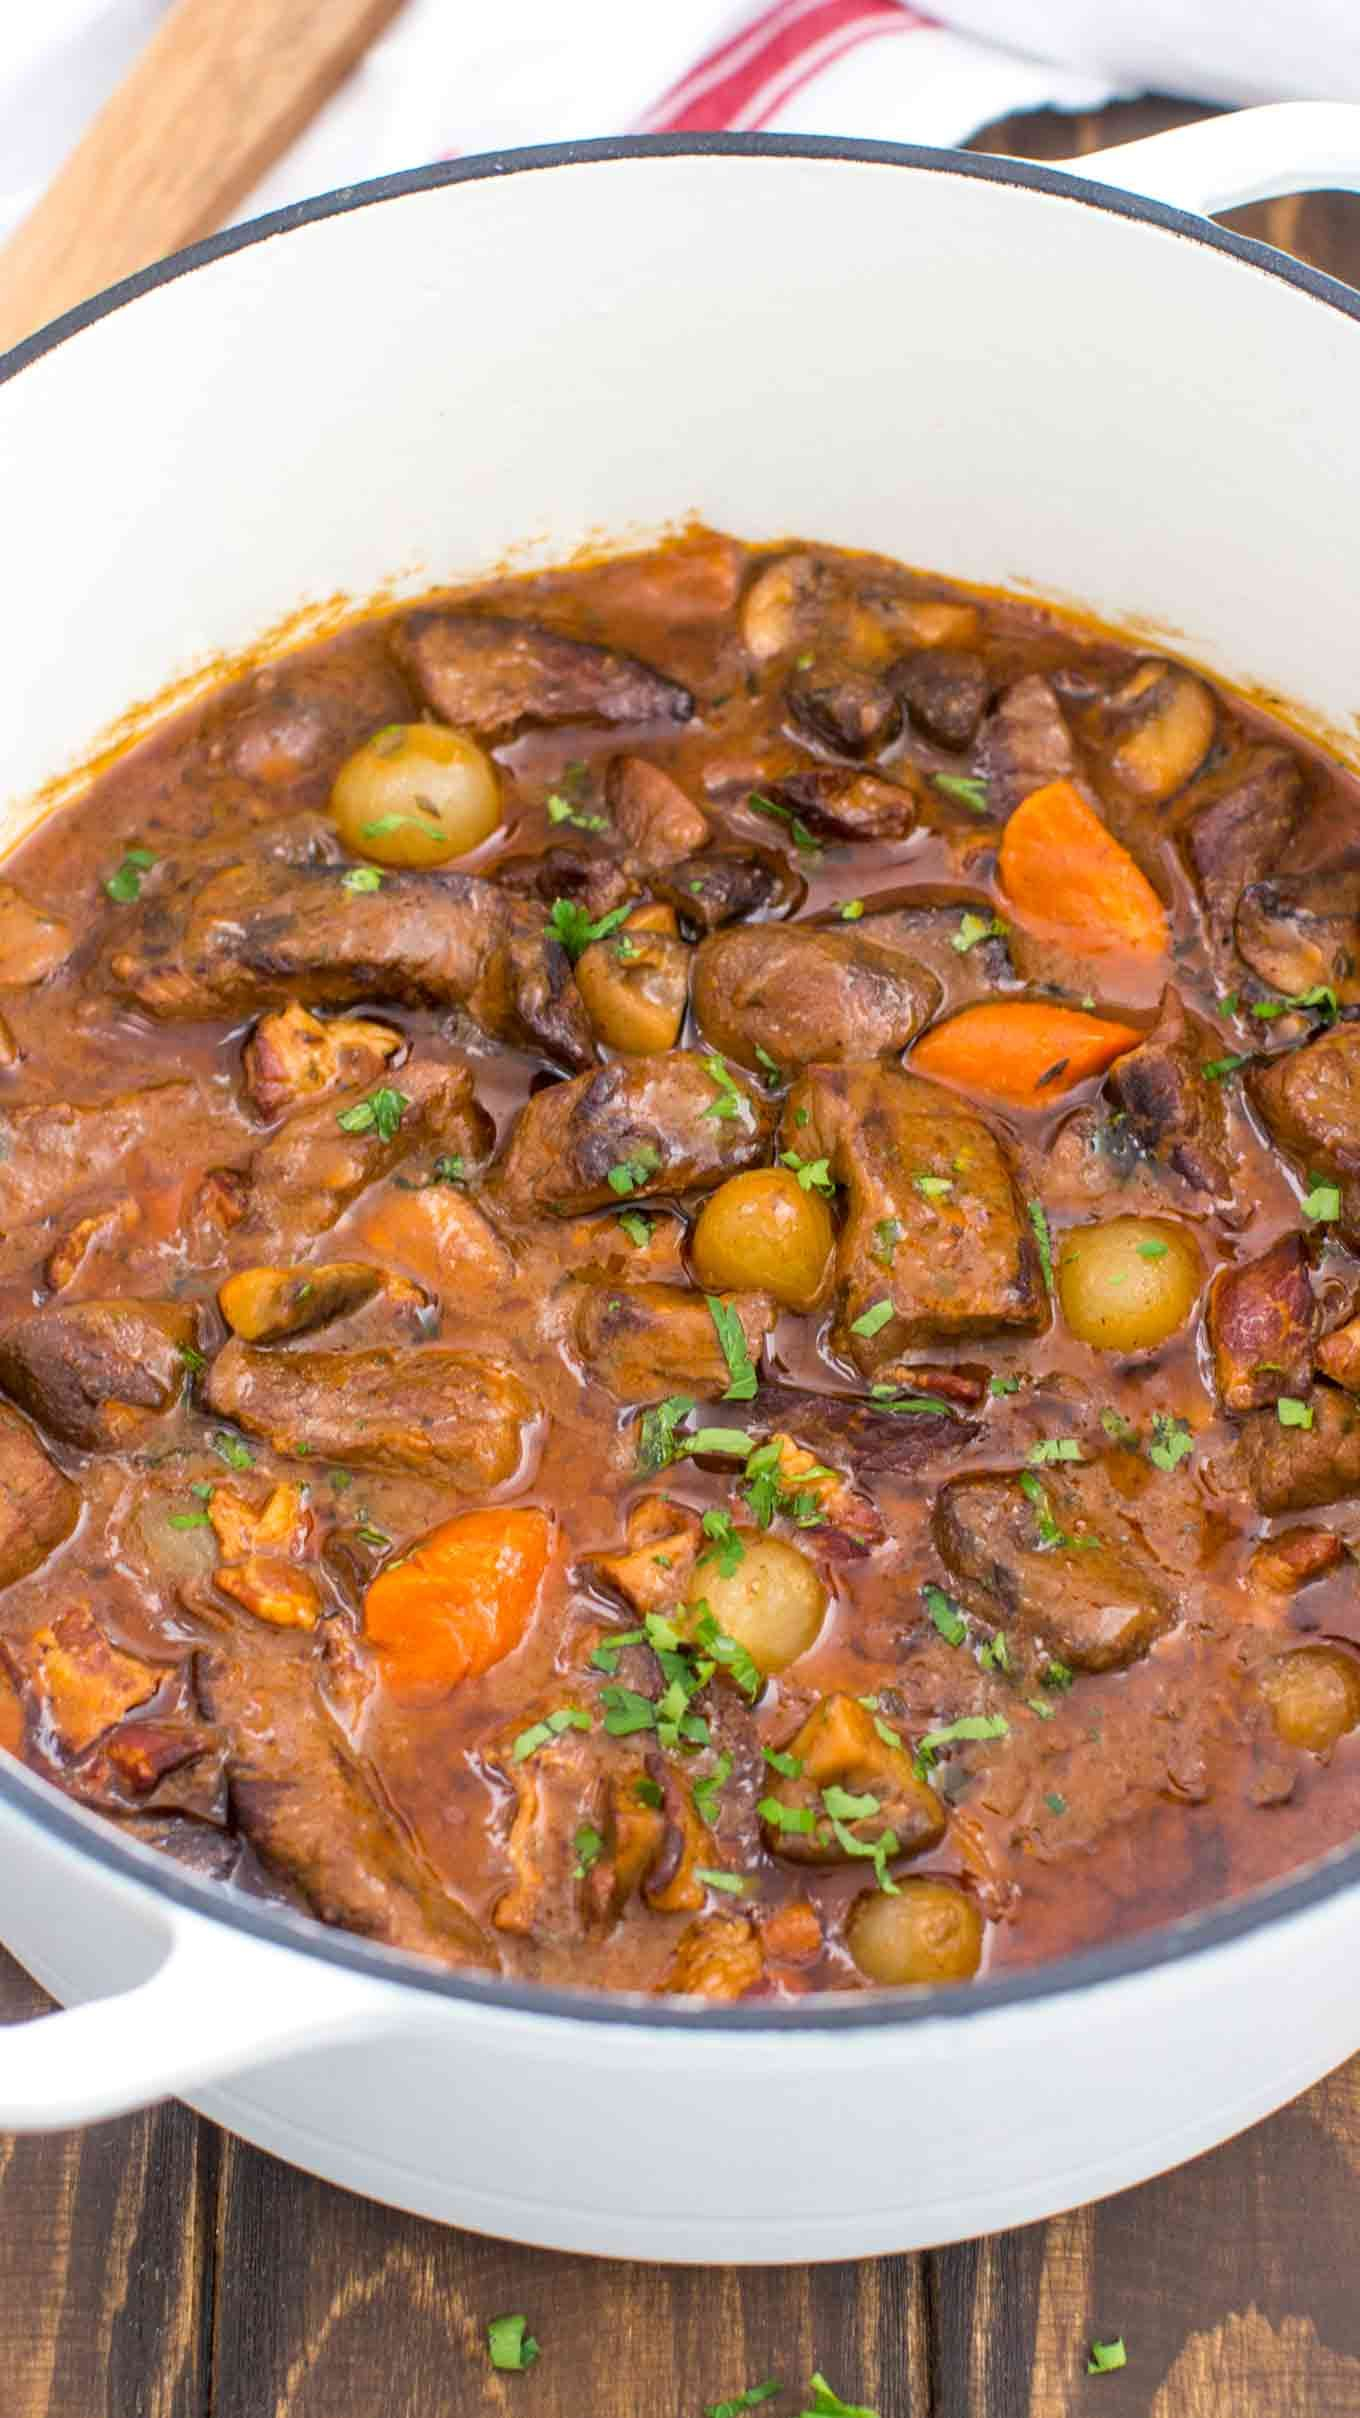 Beef Bourguignon Beef Bourguignon is rich in veggies and flavors, the meat is super moist, and literally melts in your mouth.#beefbourguignon